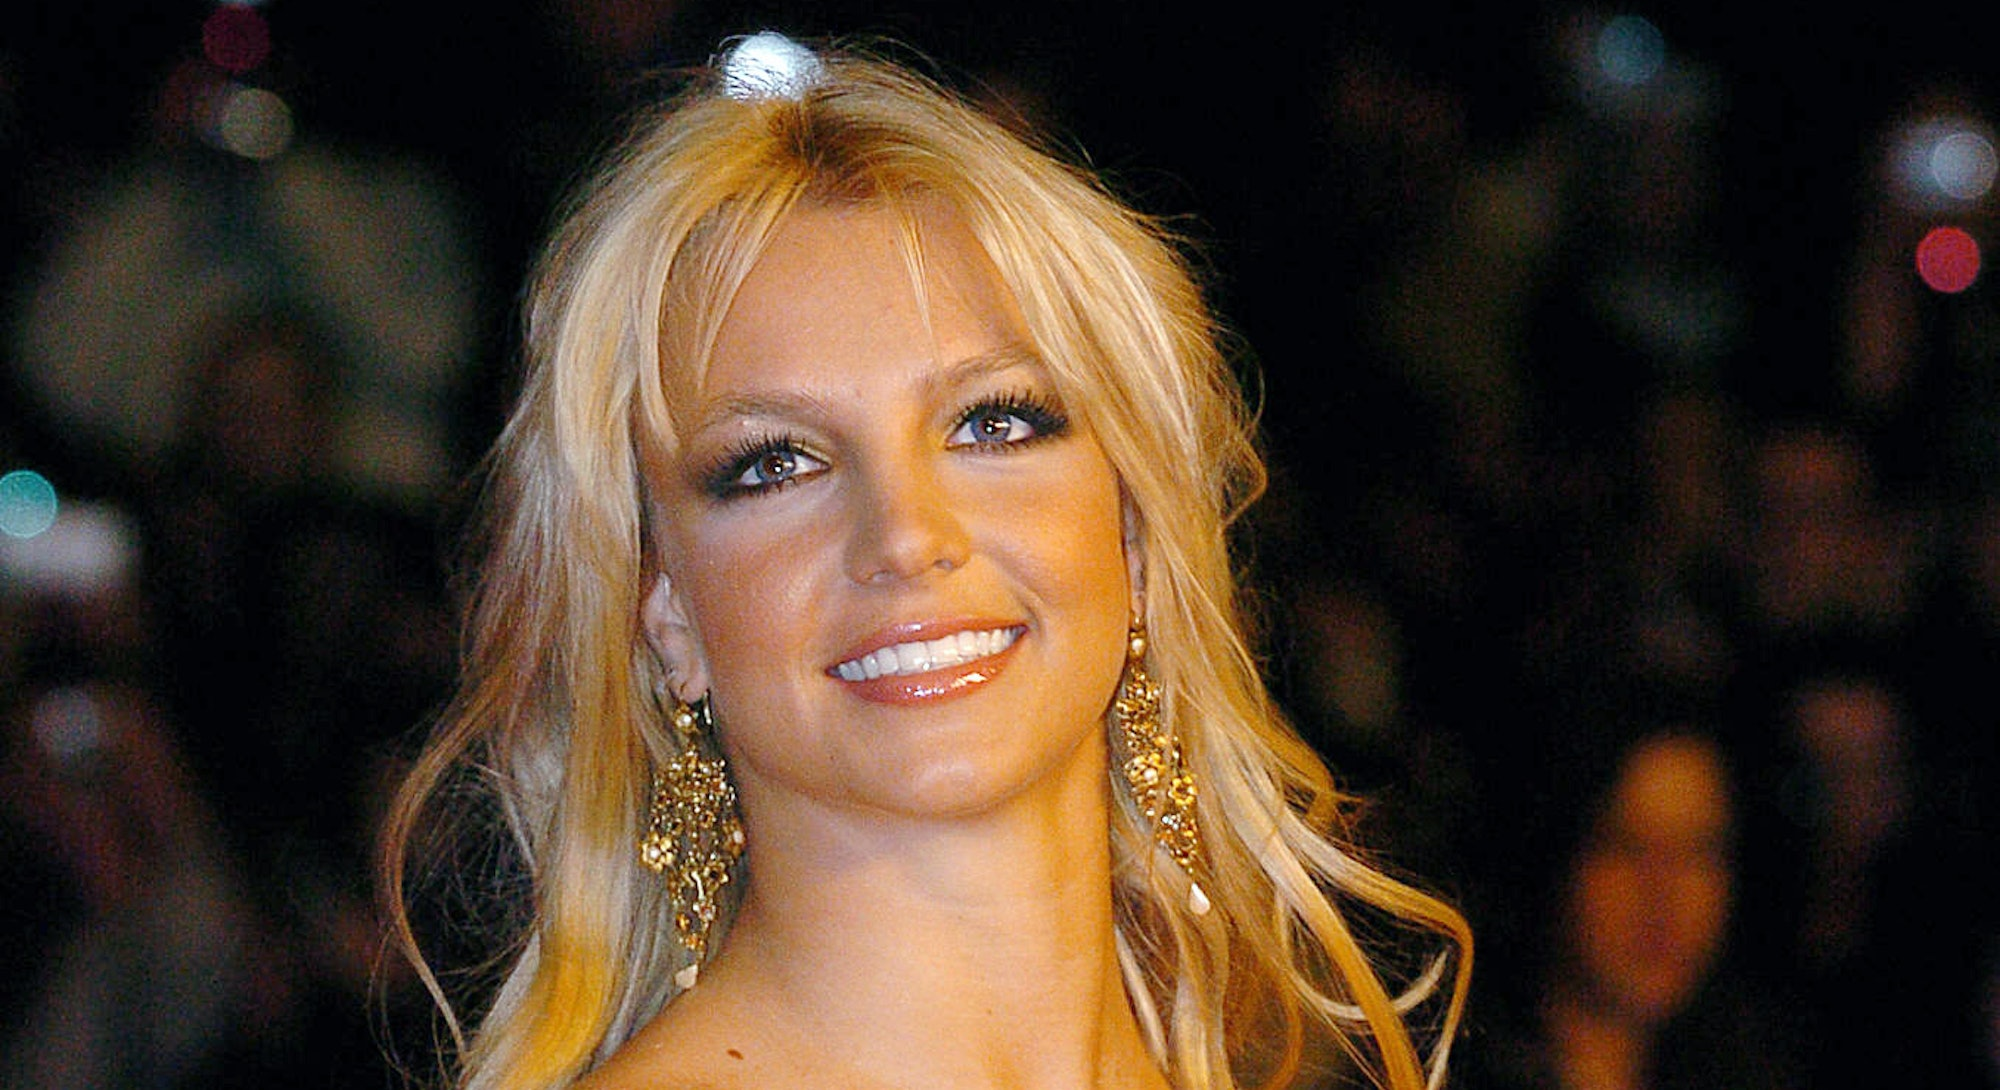 US rock star Britney Spears arrives 24 January 2004 at Cannes' Palais des Festivals, for France's an...